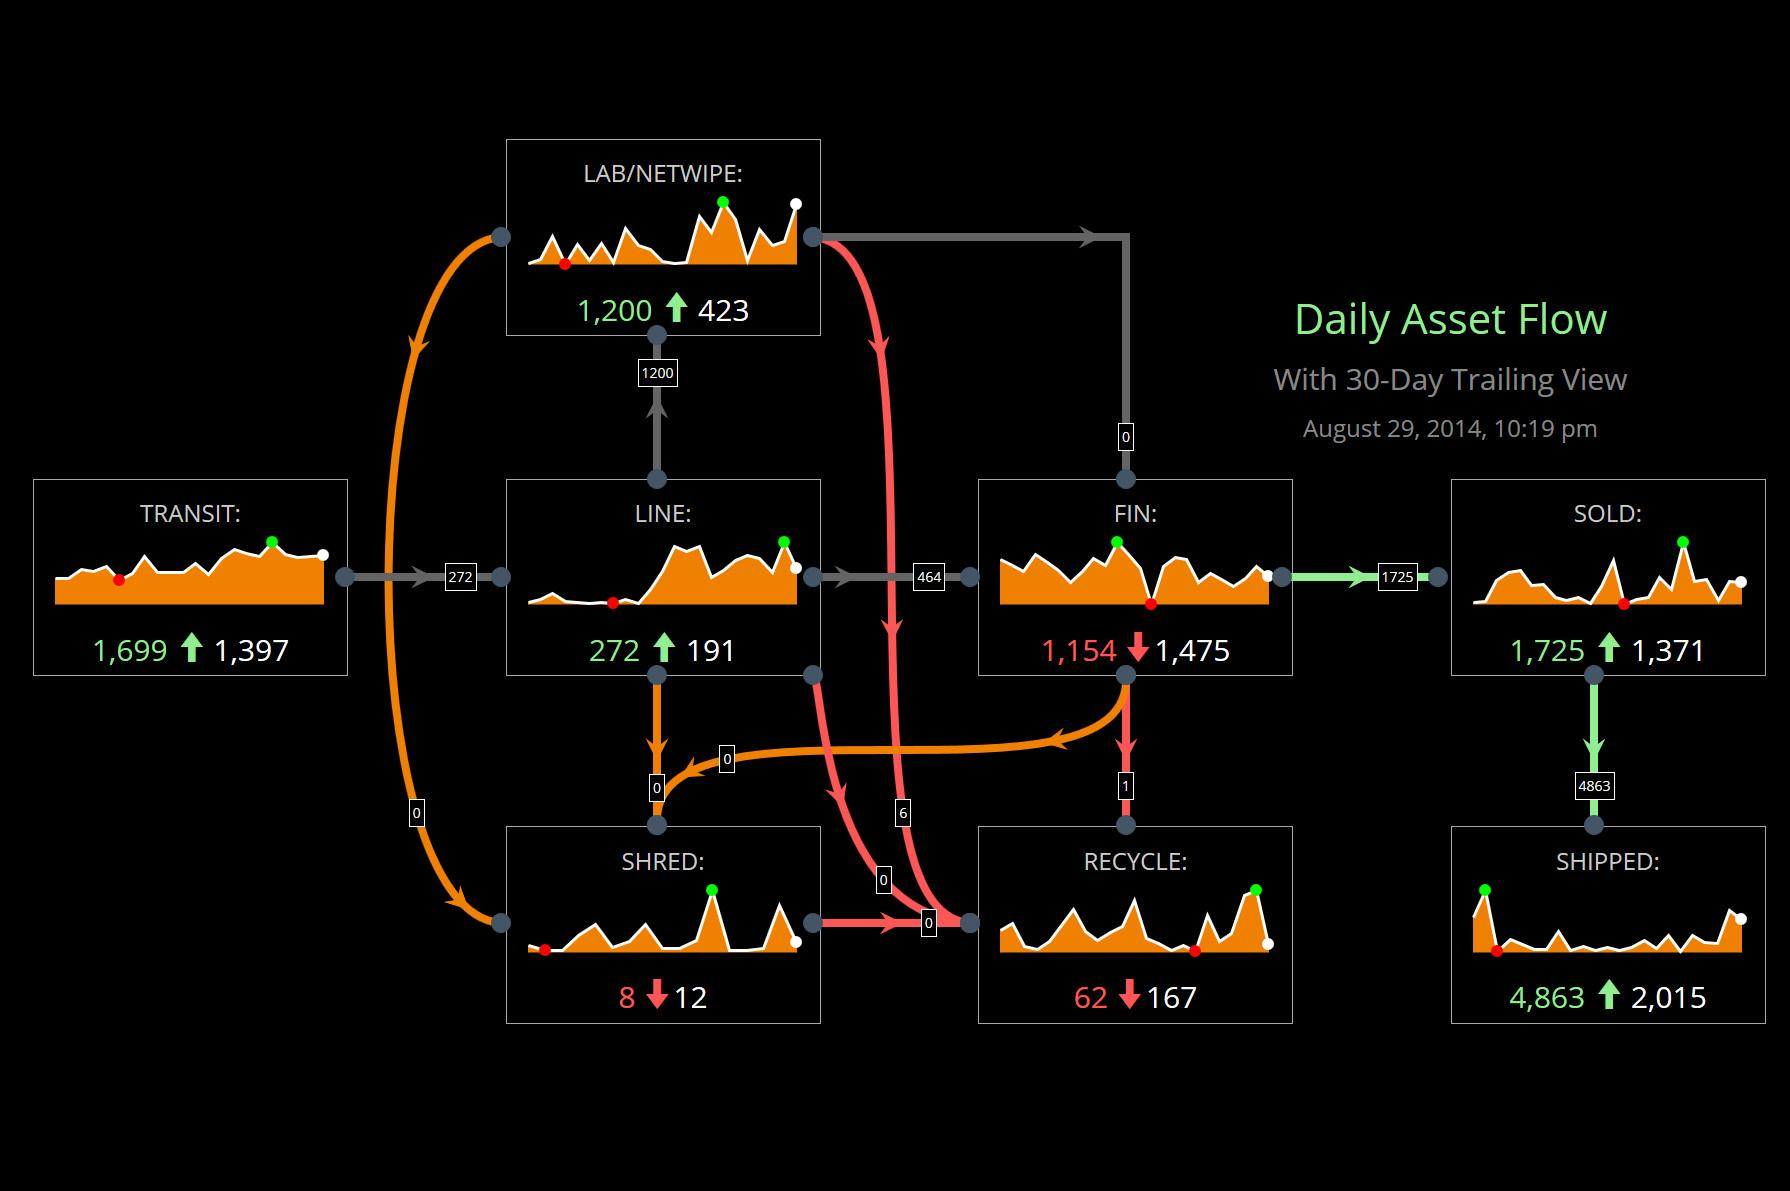 Daily Asset Flow Dashboard